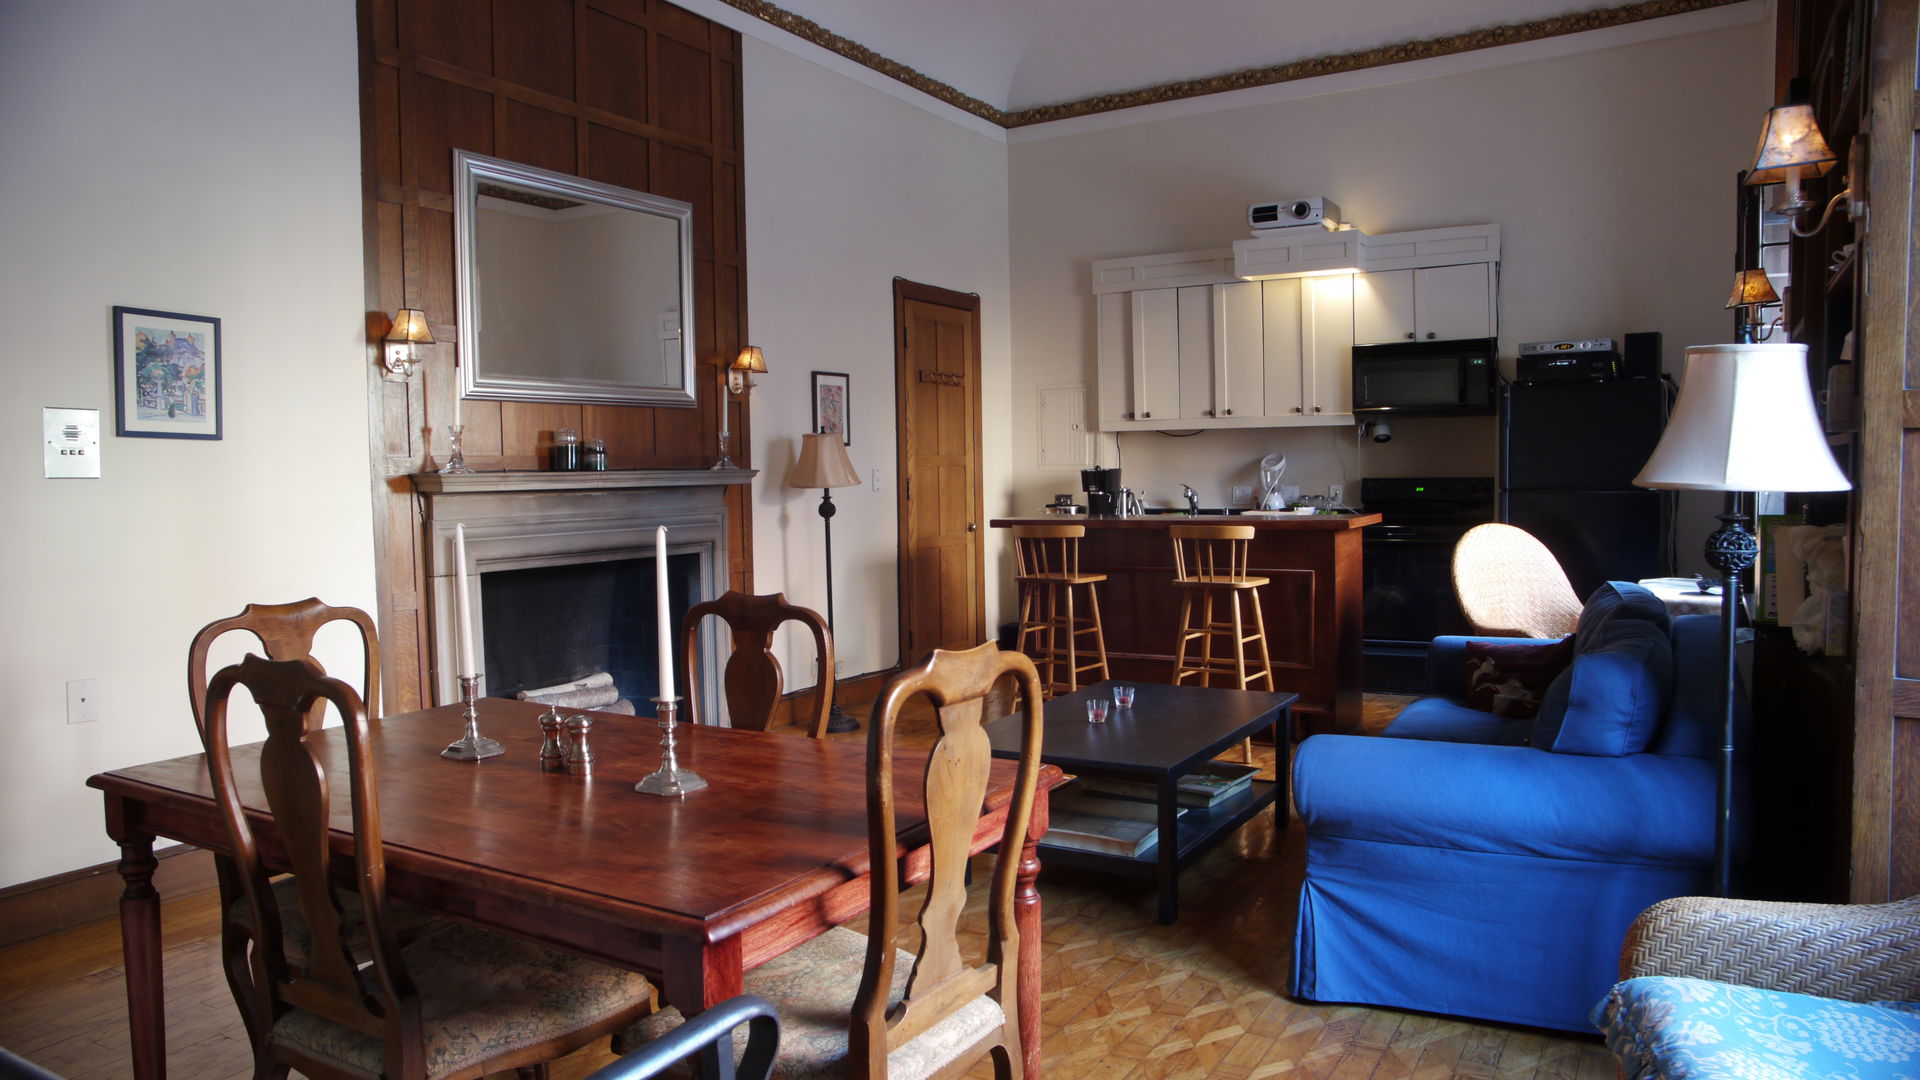 Attractive Elegant 1 Bedroom Apartment In The Heart Of Boston. 3.5 Hours To NYC